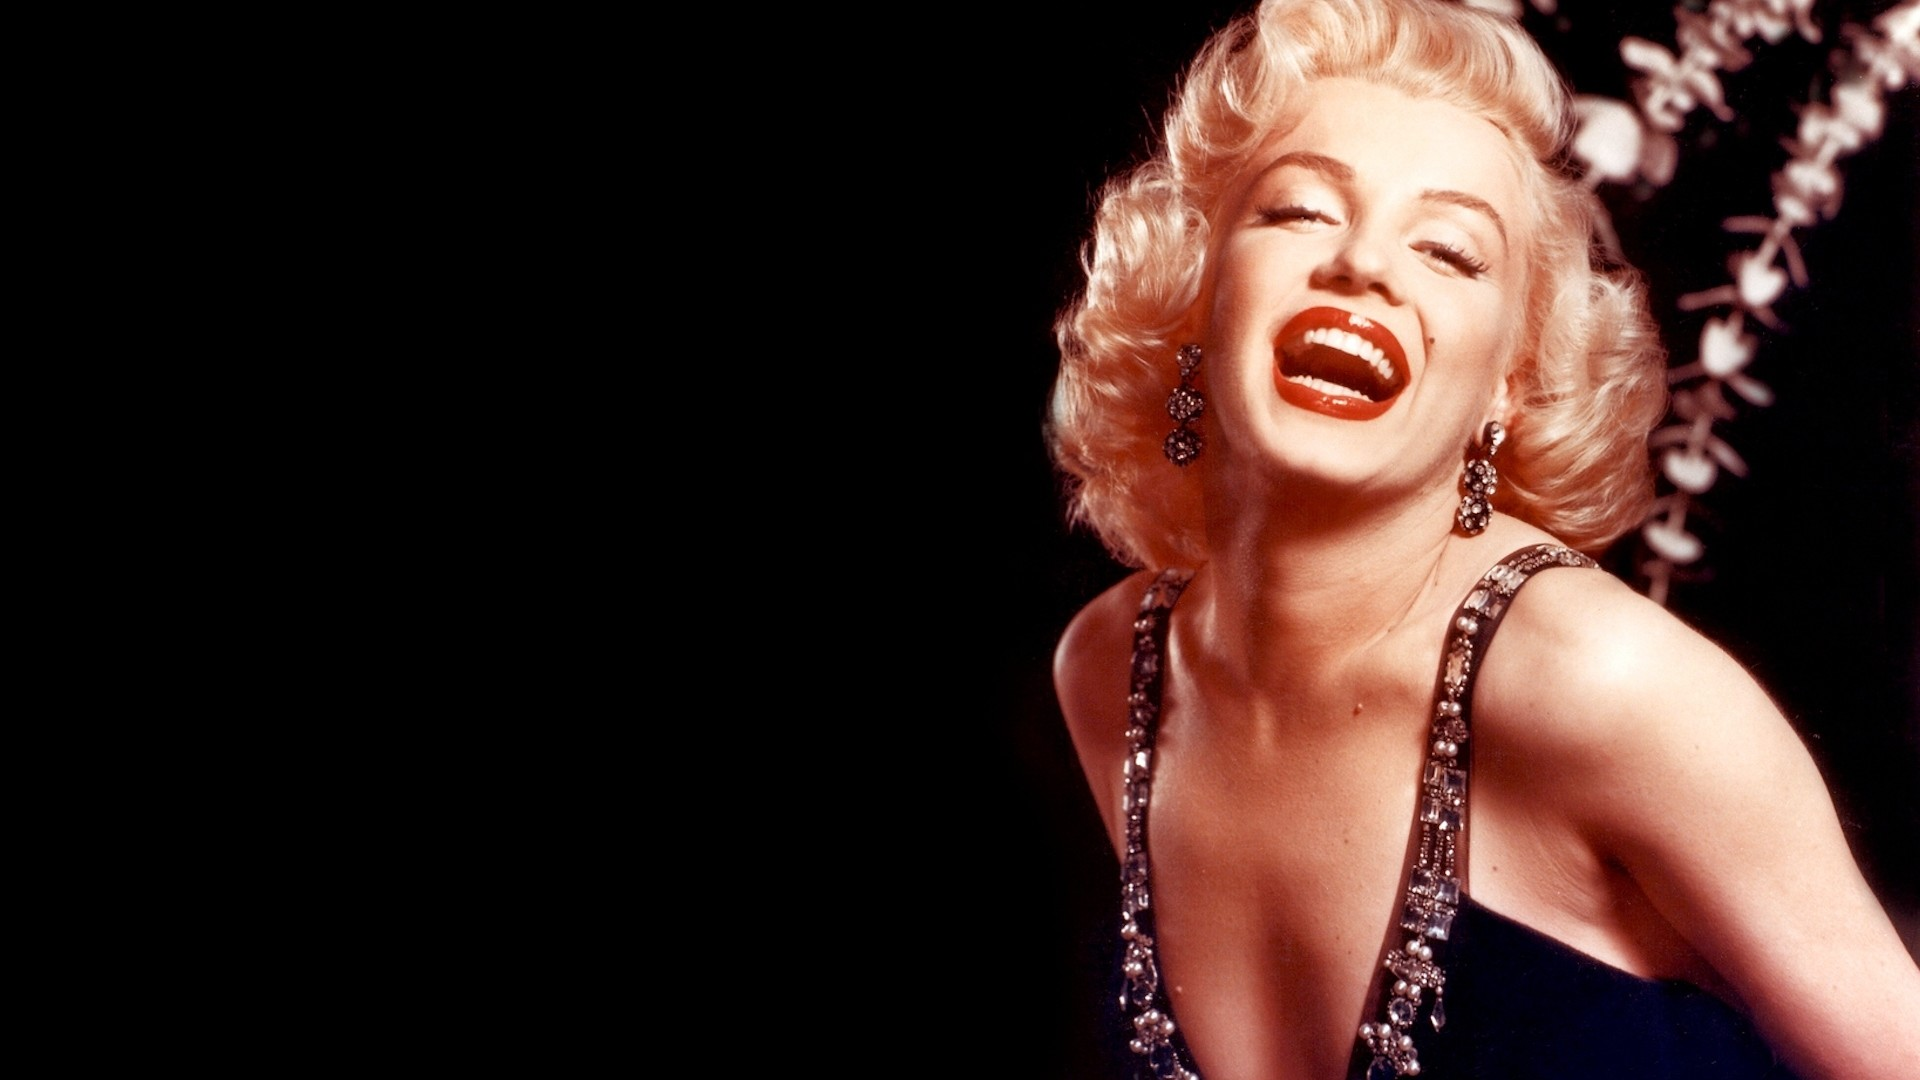 Res: 1920x1080, Marilyn Monroe Wallpapers 7 - 1920 X 1080